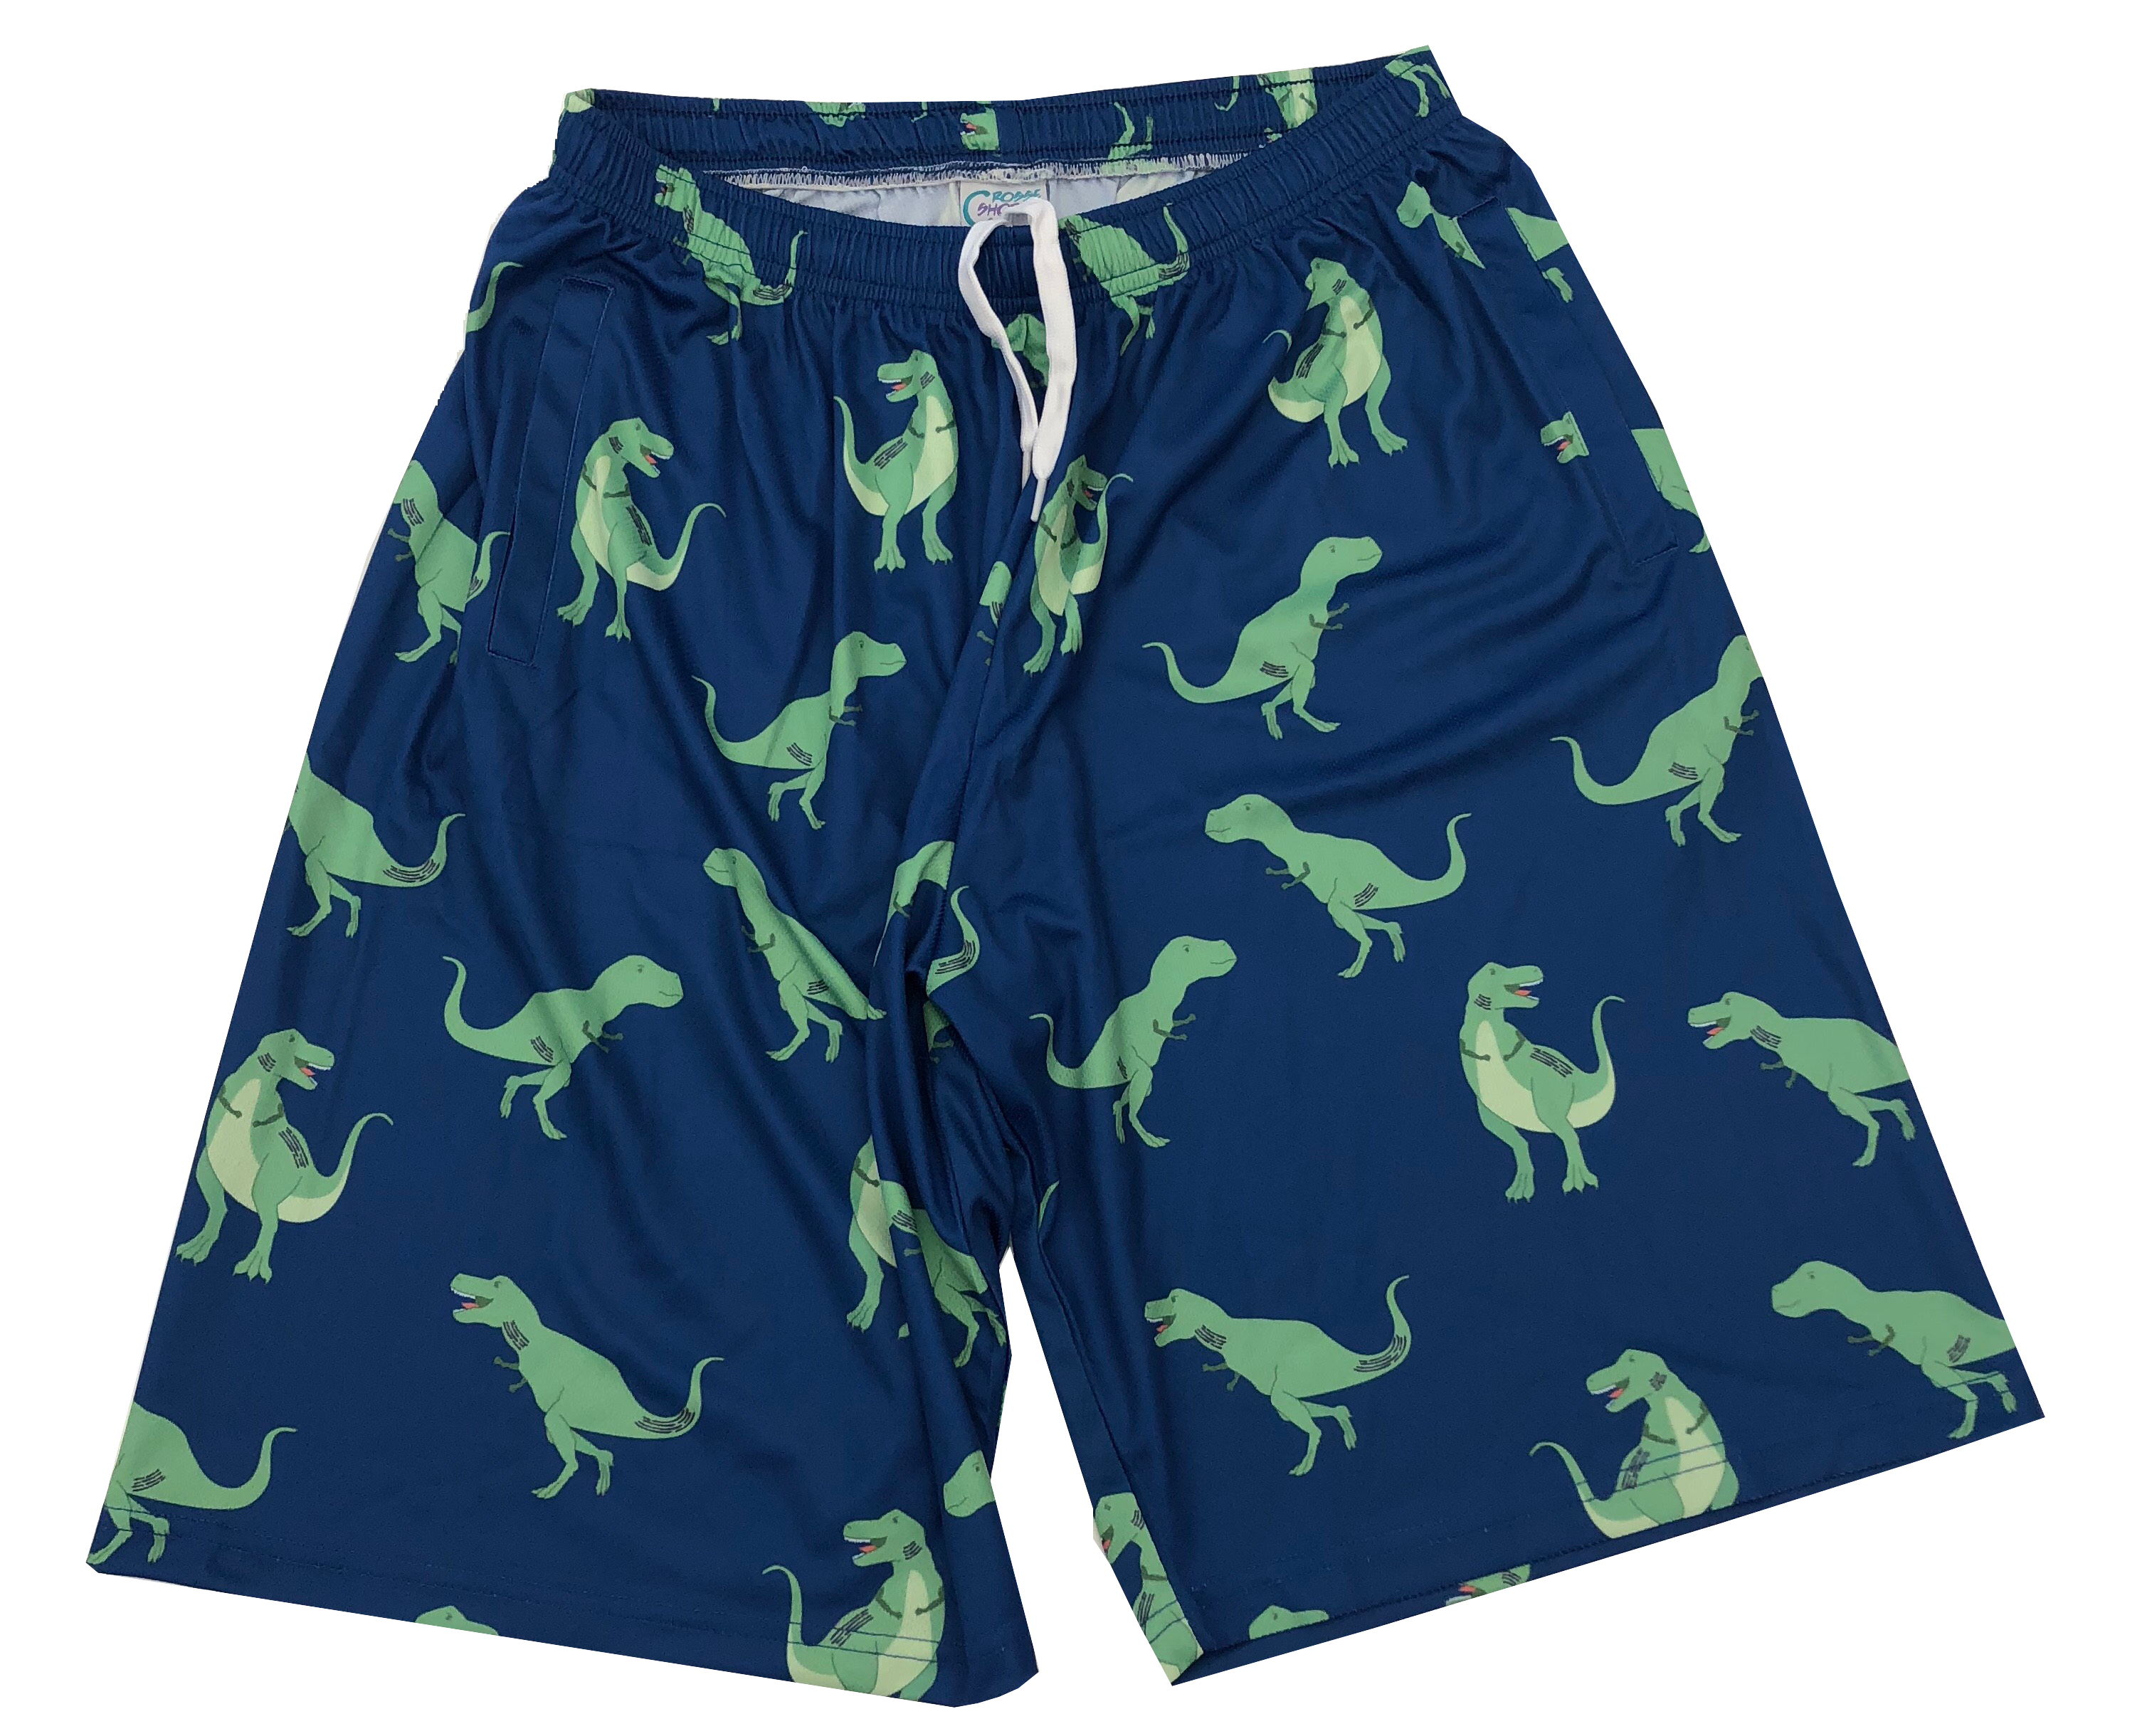 37c6bfb08e613 Cool Lacrosse Shorts for Youth and Men. Check Out Our Dinosaur Pattern  Shorts.